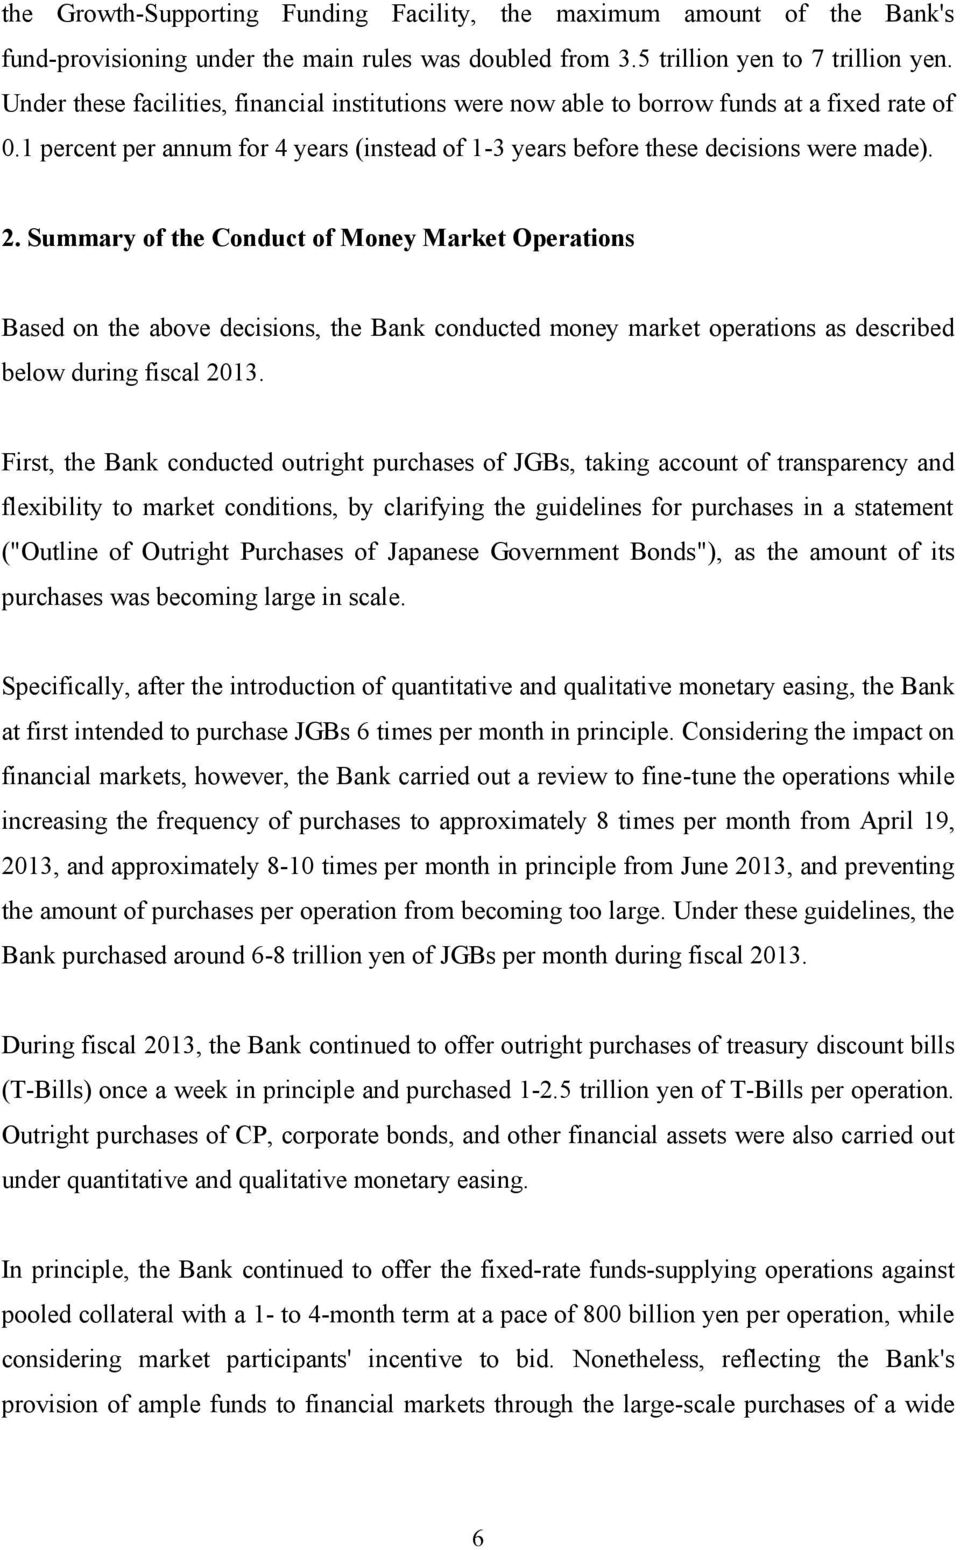 Summary of the Conduct of Money Market Operations Based on the above decisions, the Bank conducted money market operations as described below during fiscal 2013.